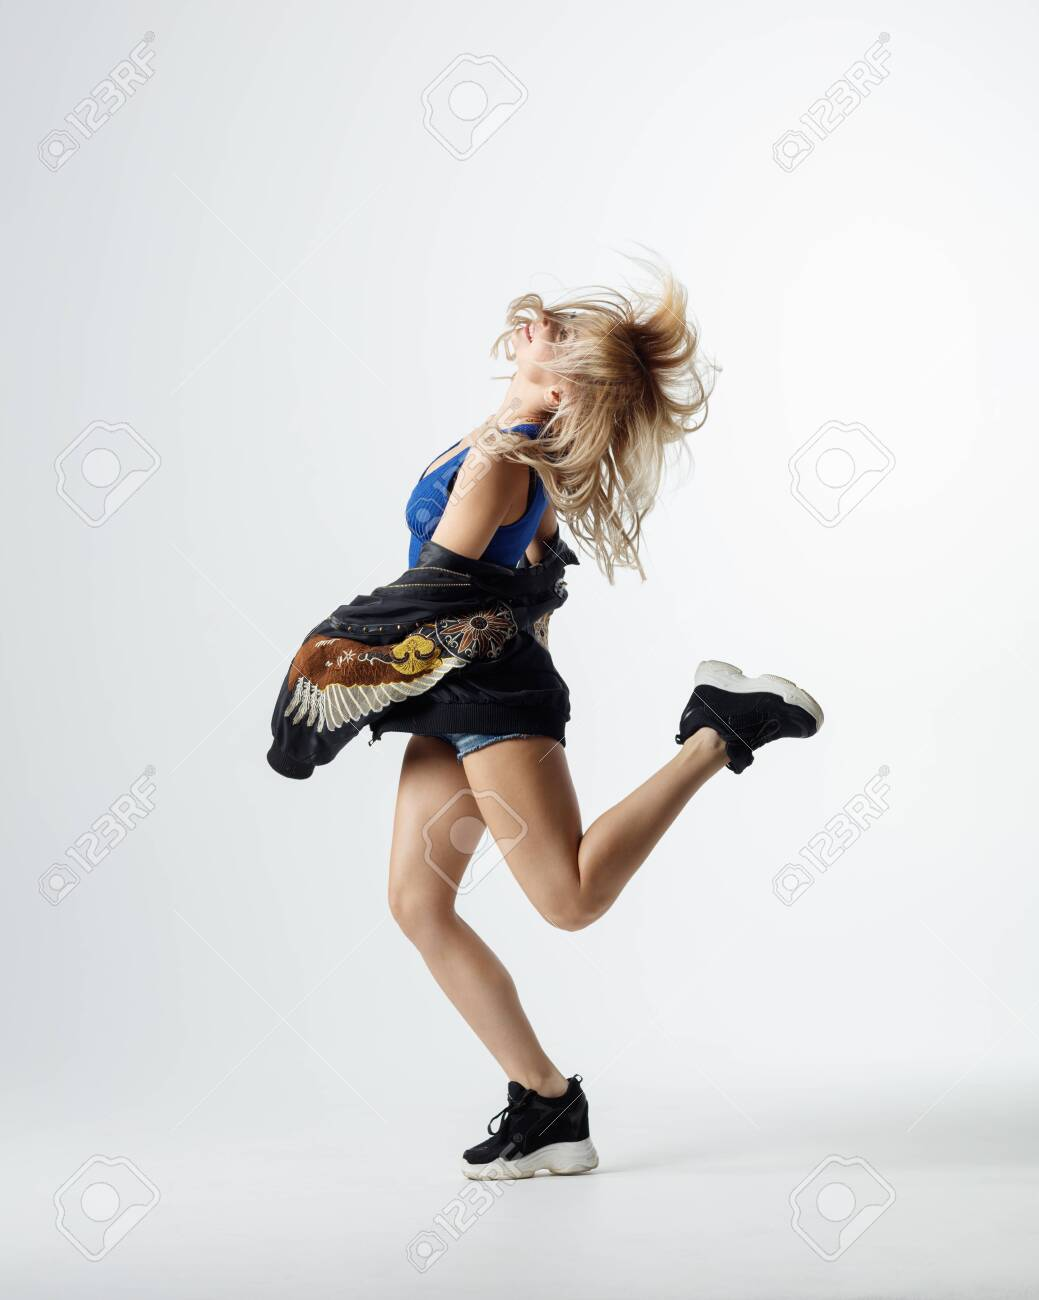 Hip hop dancer moving and jumping in photostudio - 120484860